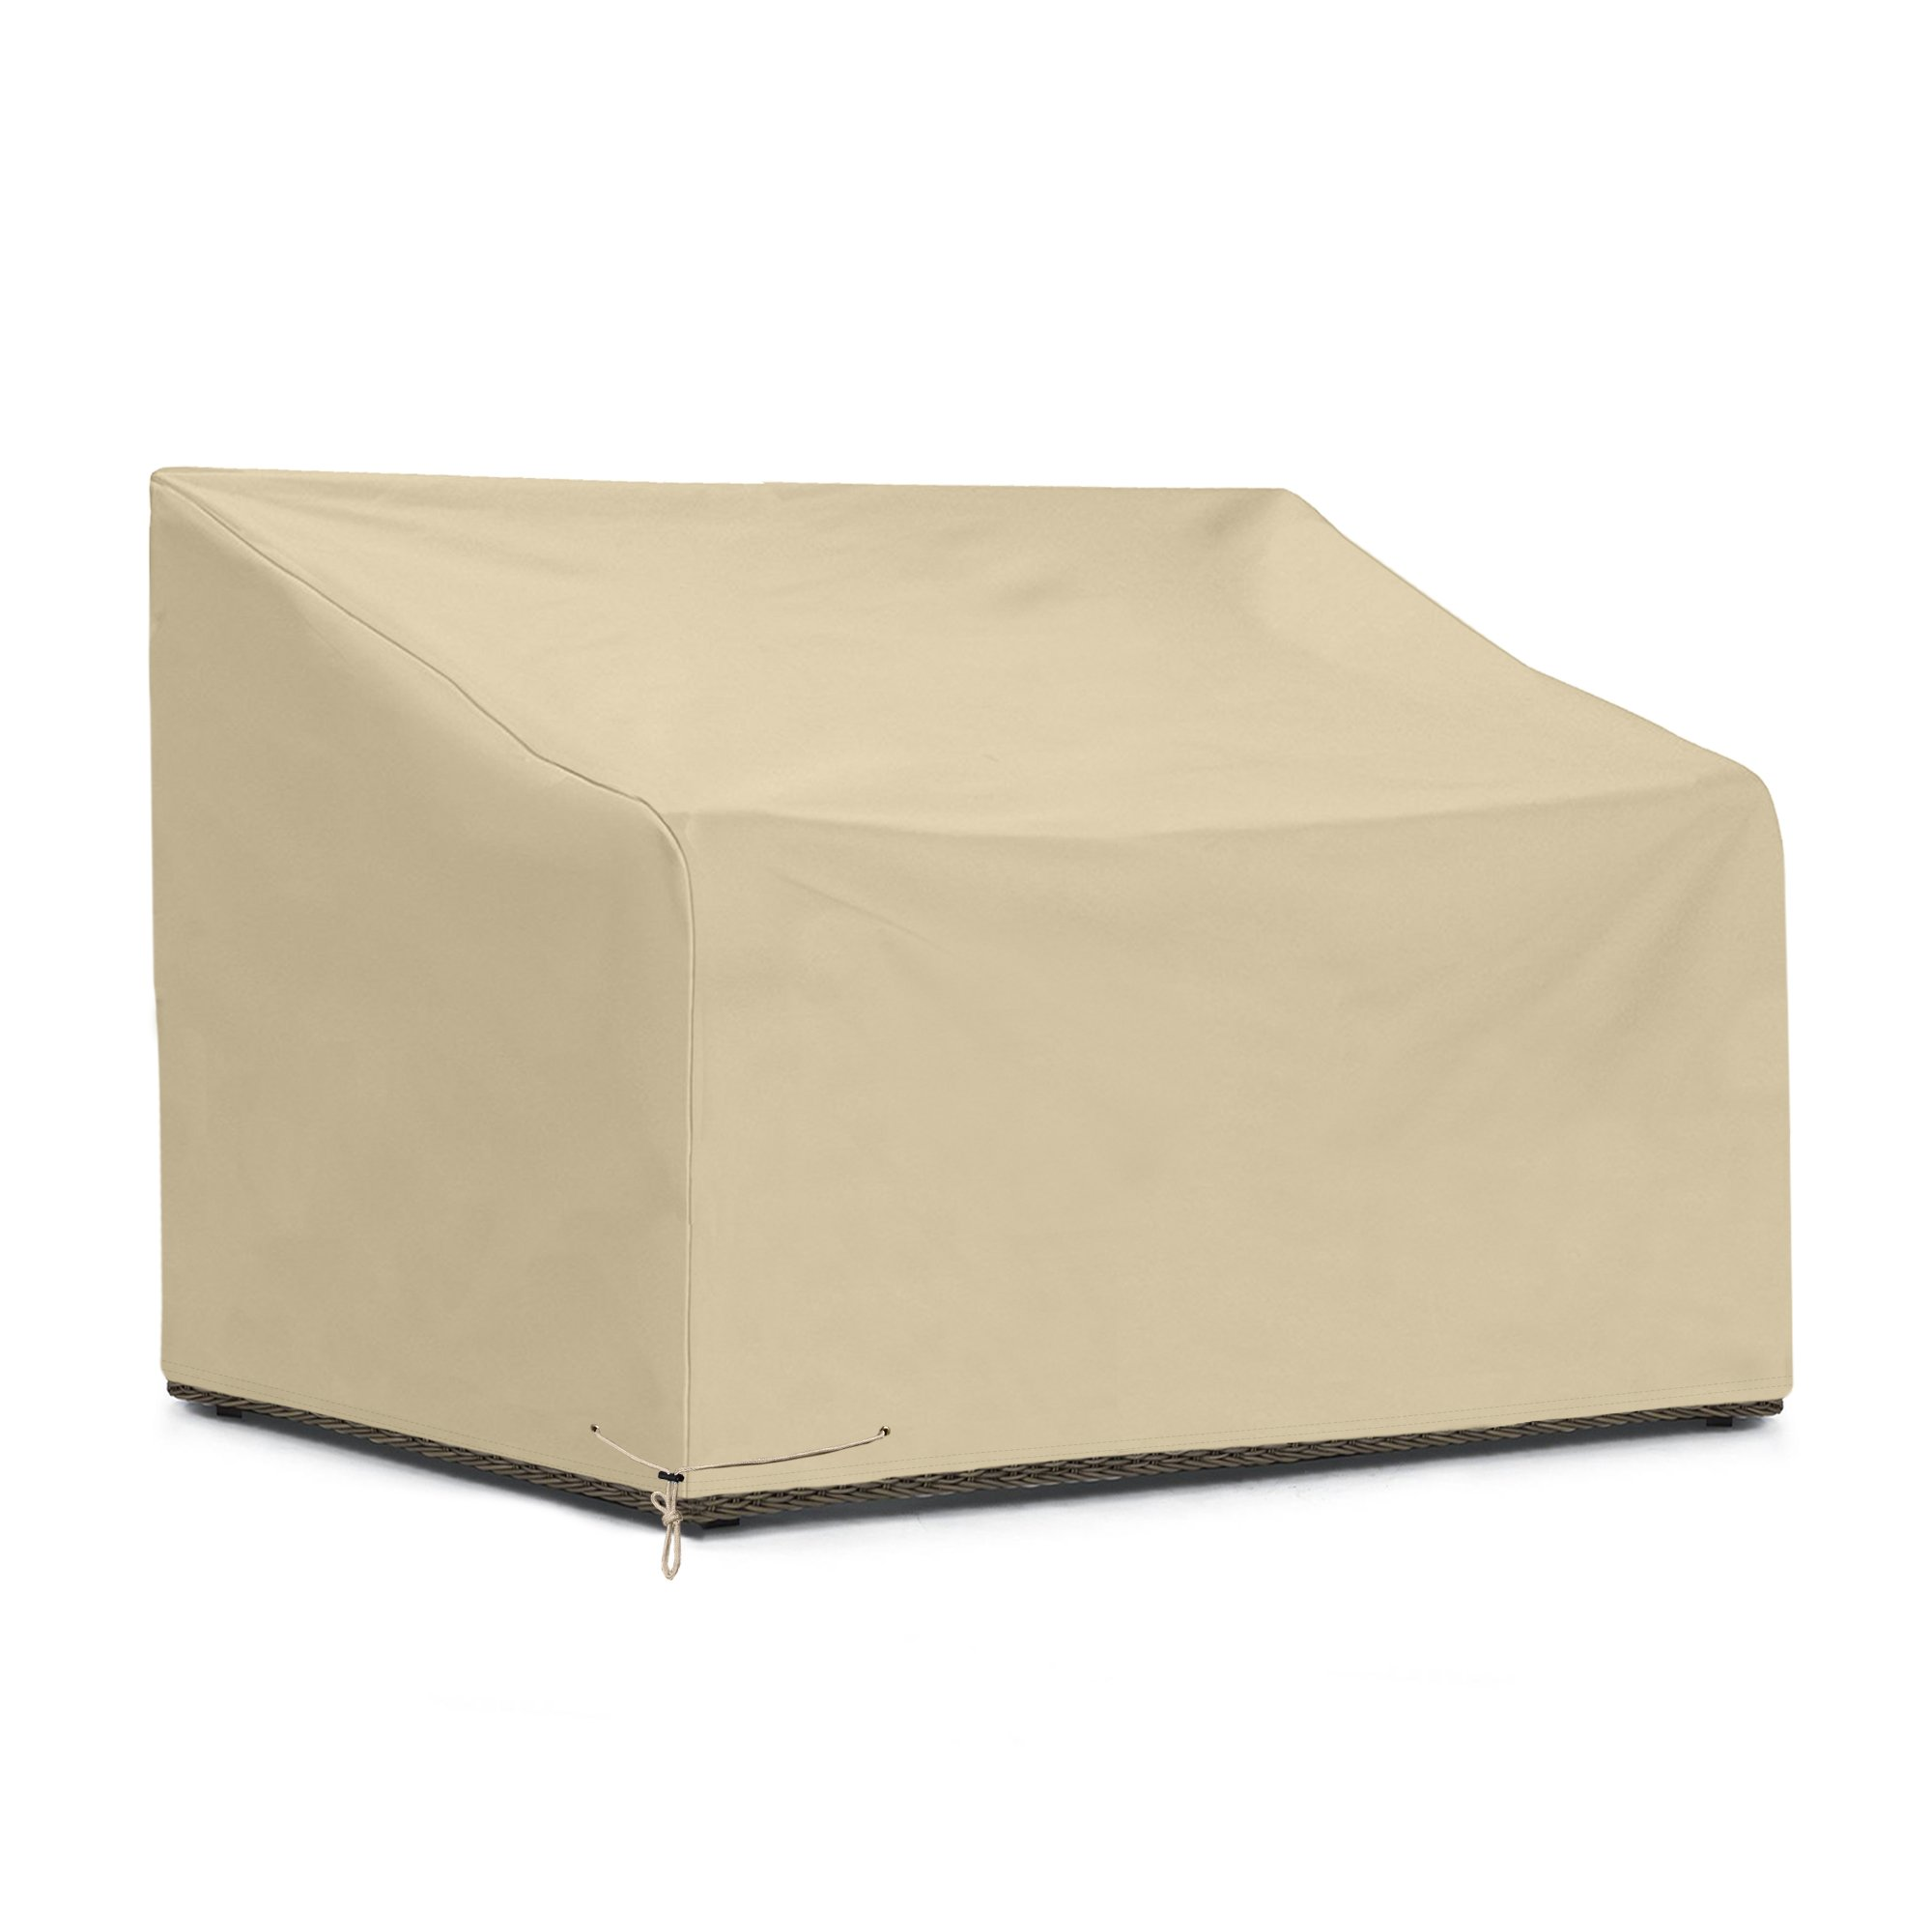 SunPatio Outdoor Sofa Cover 60 Inch, 2 Seater Sofa Covers Weatherproof, 60''L x 40''W x 32''/22''H, Durable and All Weather Protection, Beige by SunPatio